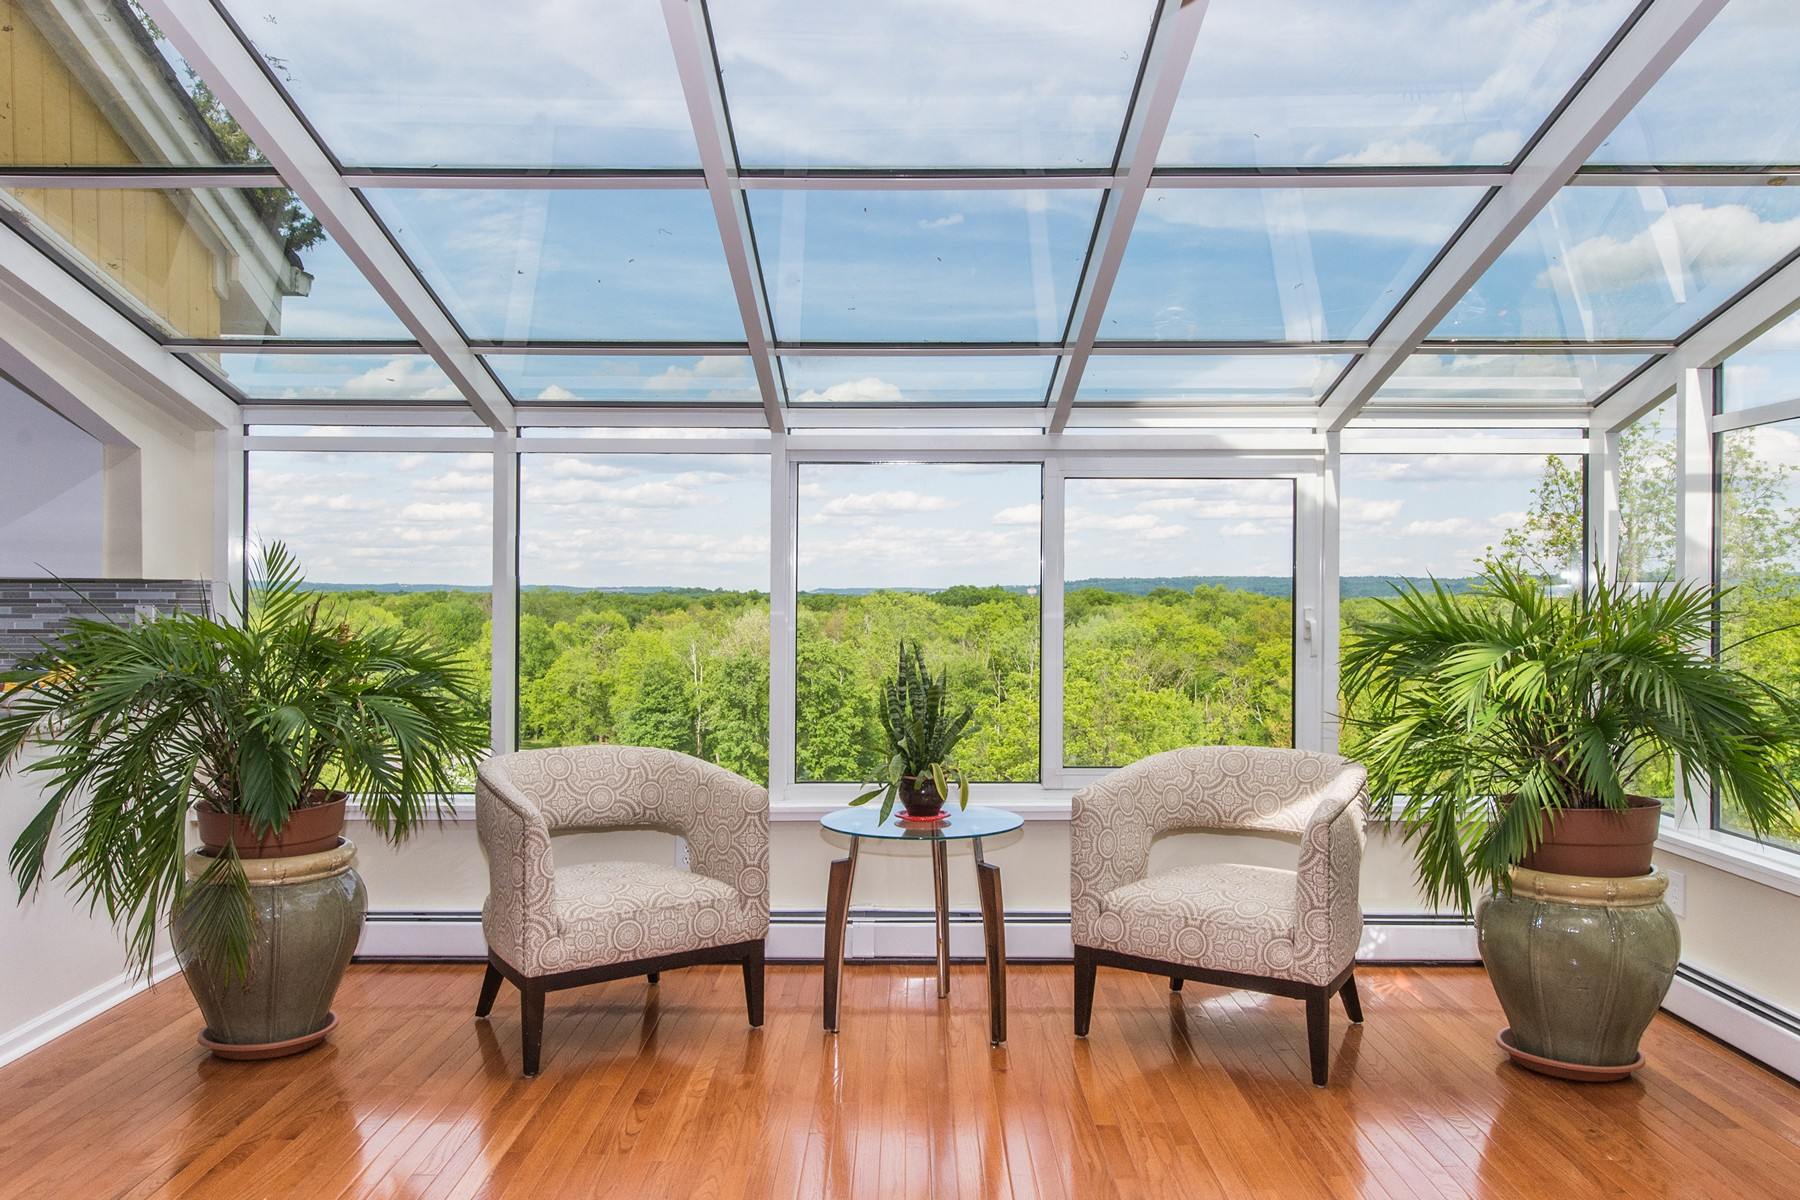 Single Family Homes for Sale at Builder's Own Home! 61 Hook Mountain Road Montville, New Jersey 07045 United States